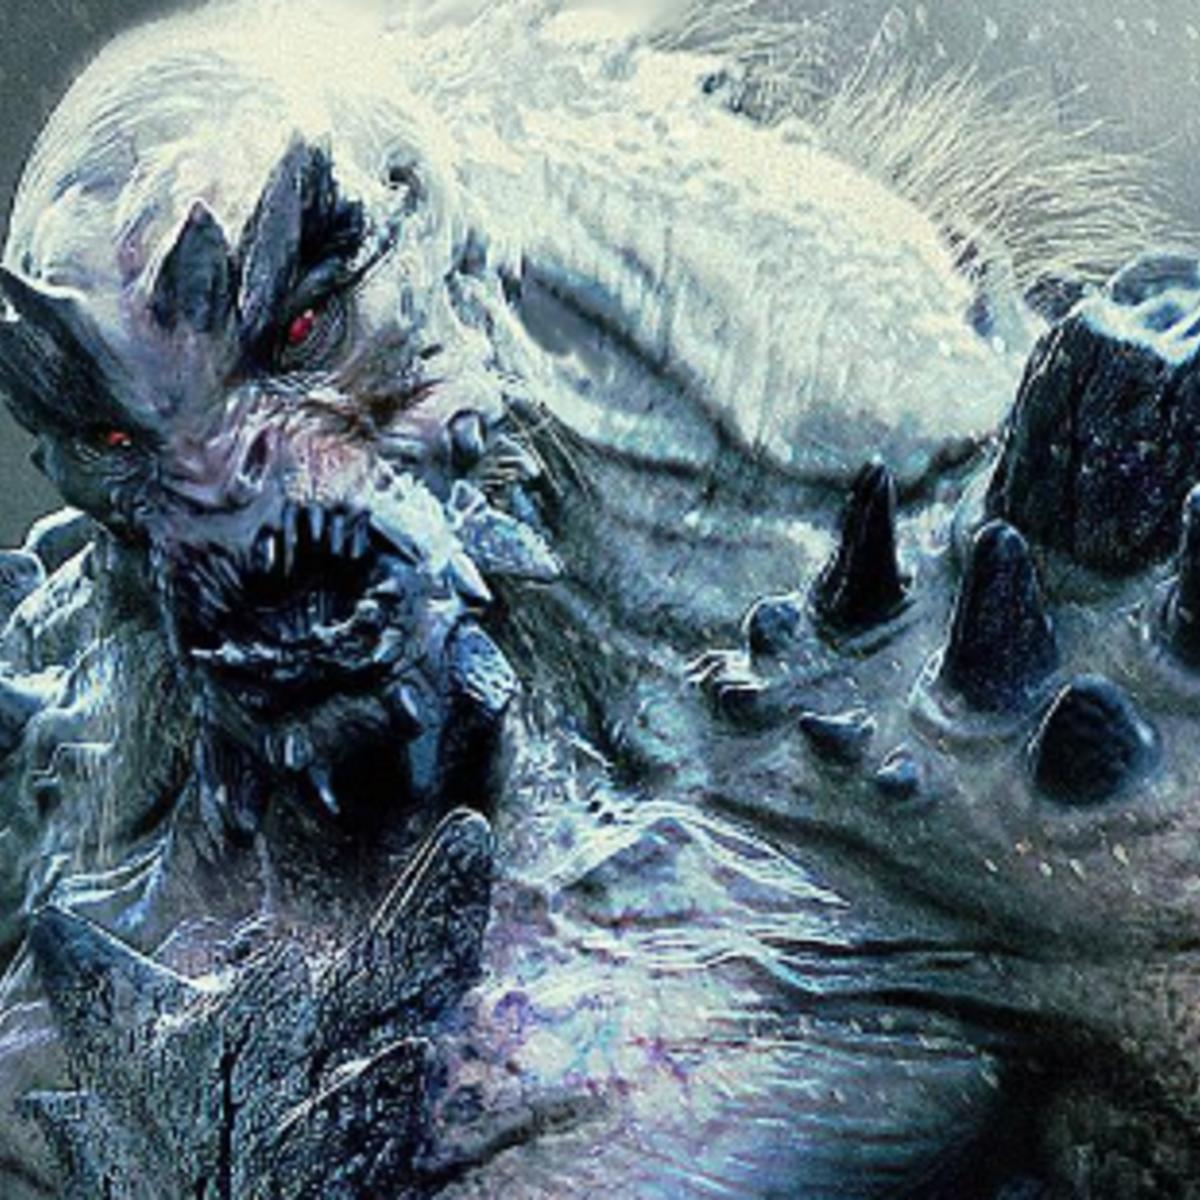 this batman v superman concept art brings doomsday back to his comic